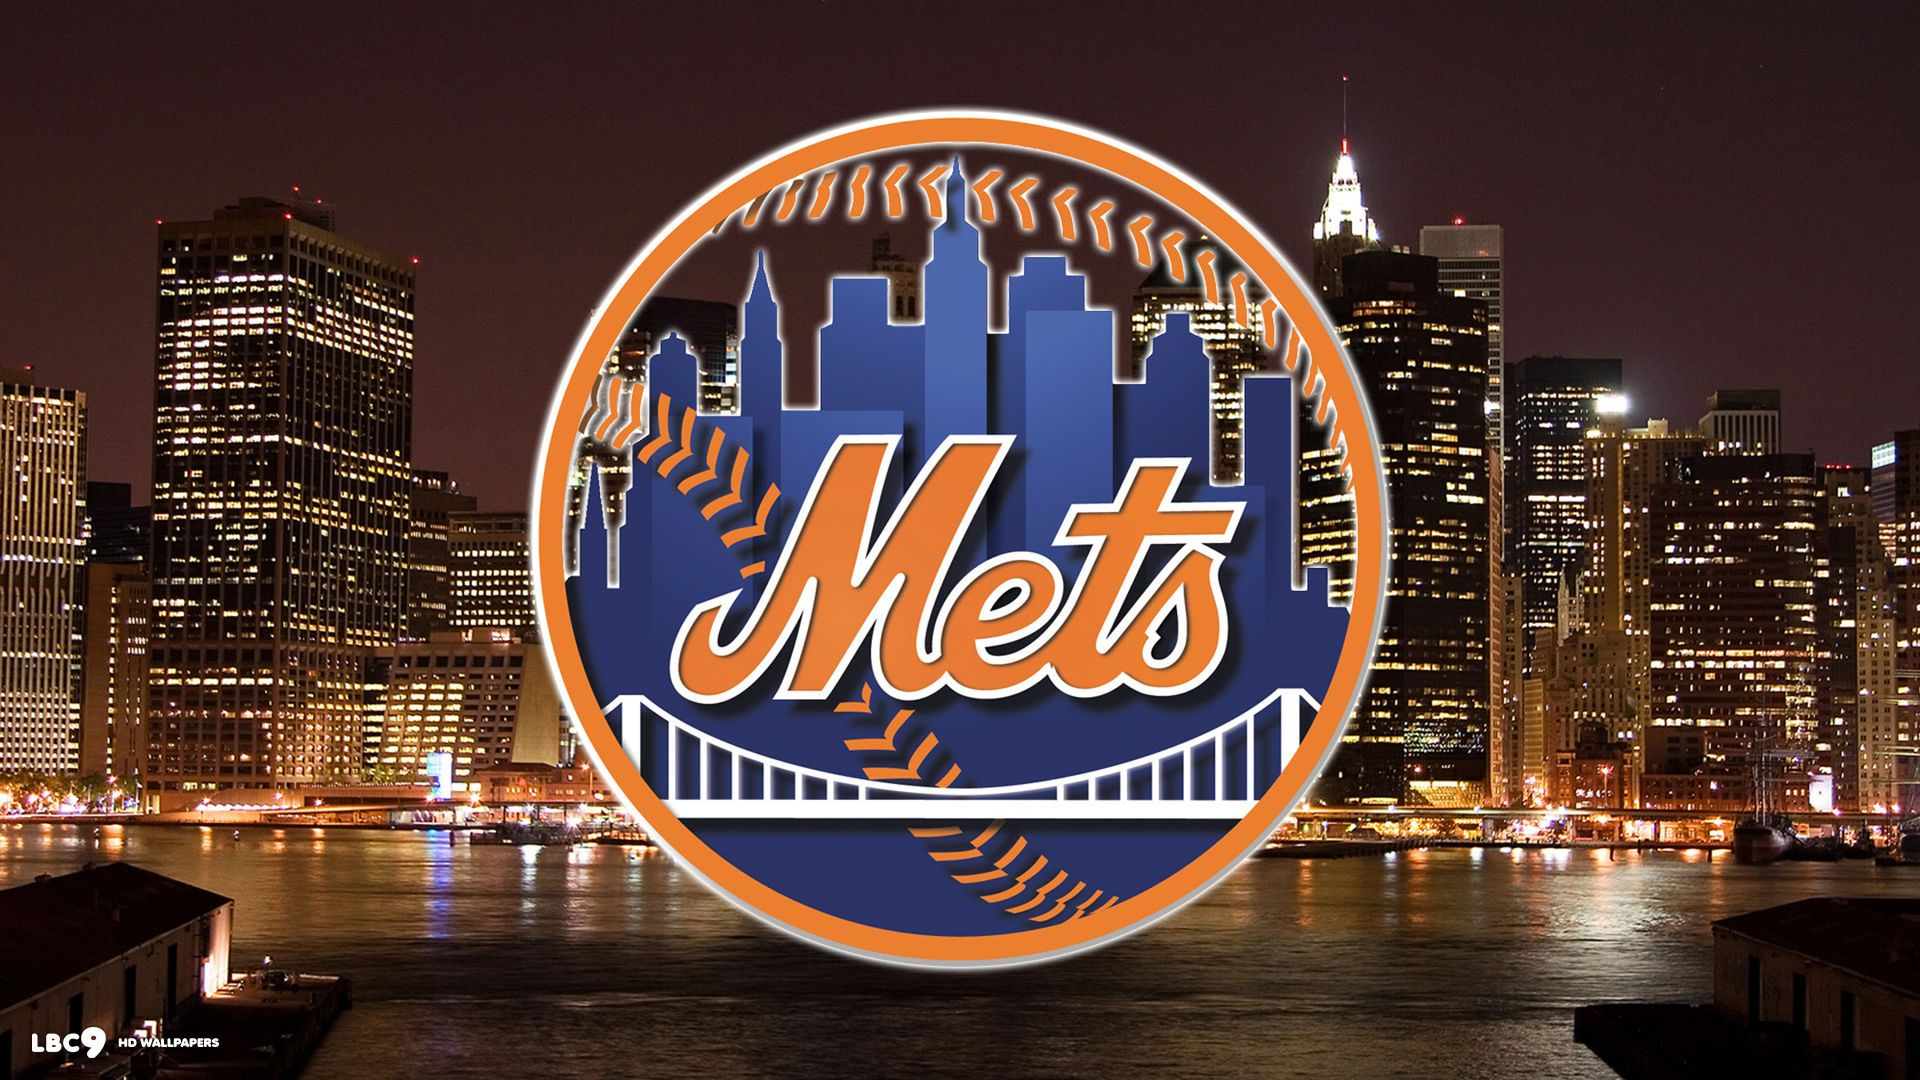 New York Mets background picture hd